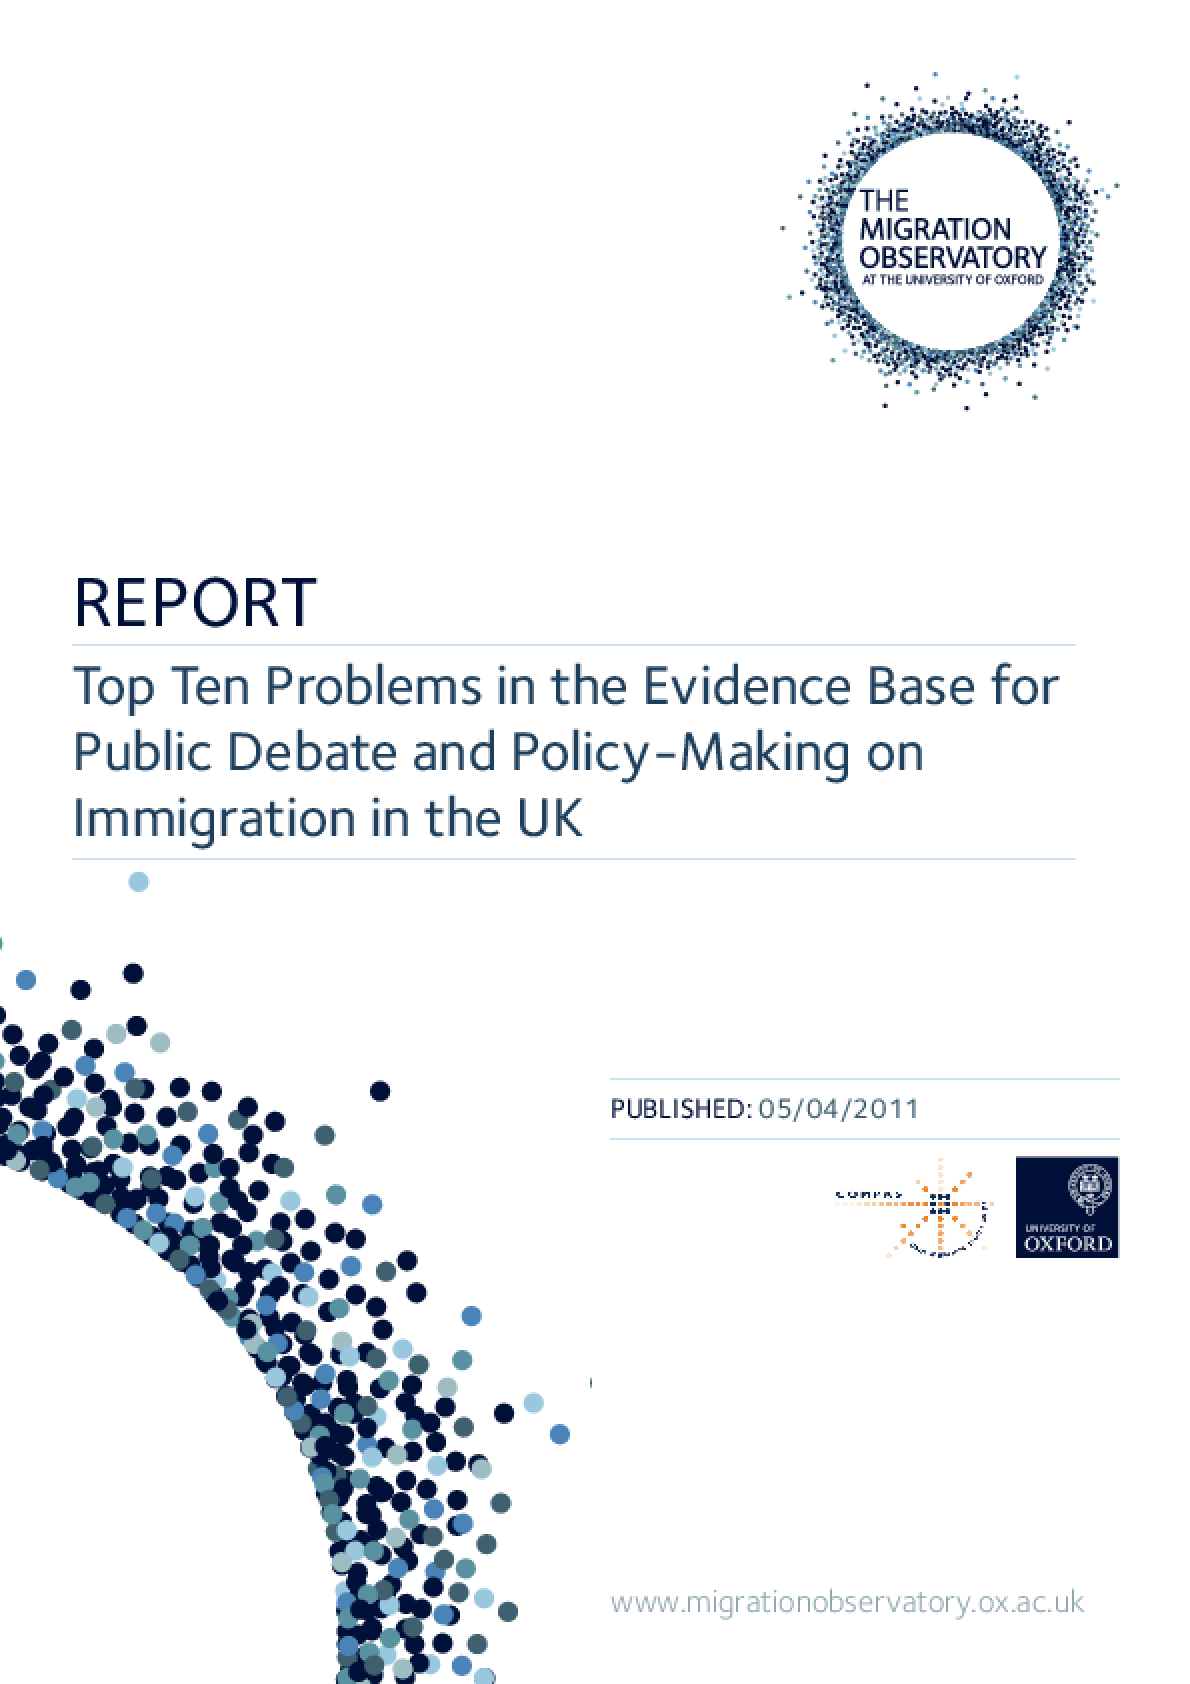 Top Ten Problems in the Evidence Base for Public Debate and Policy-Making on Immigration in the UK